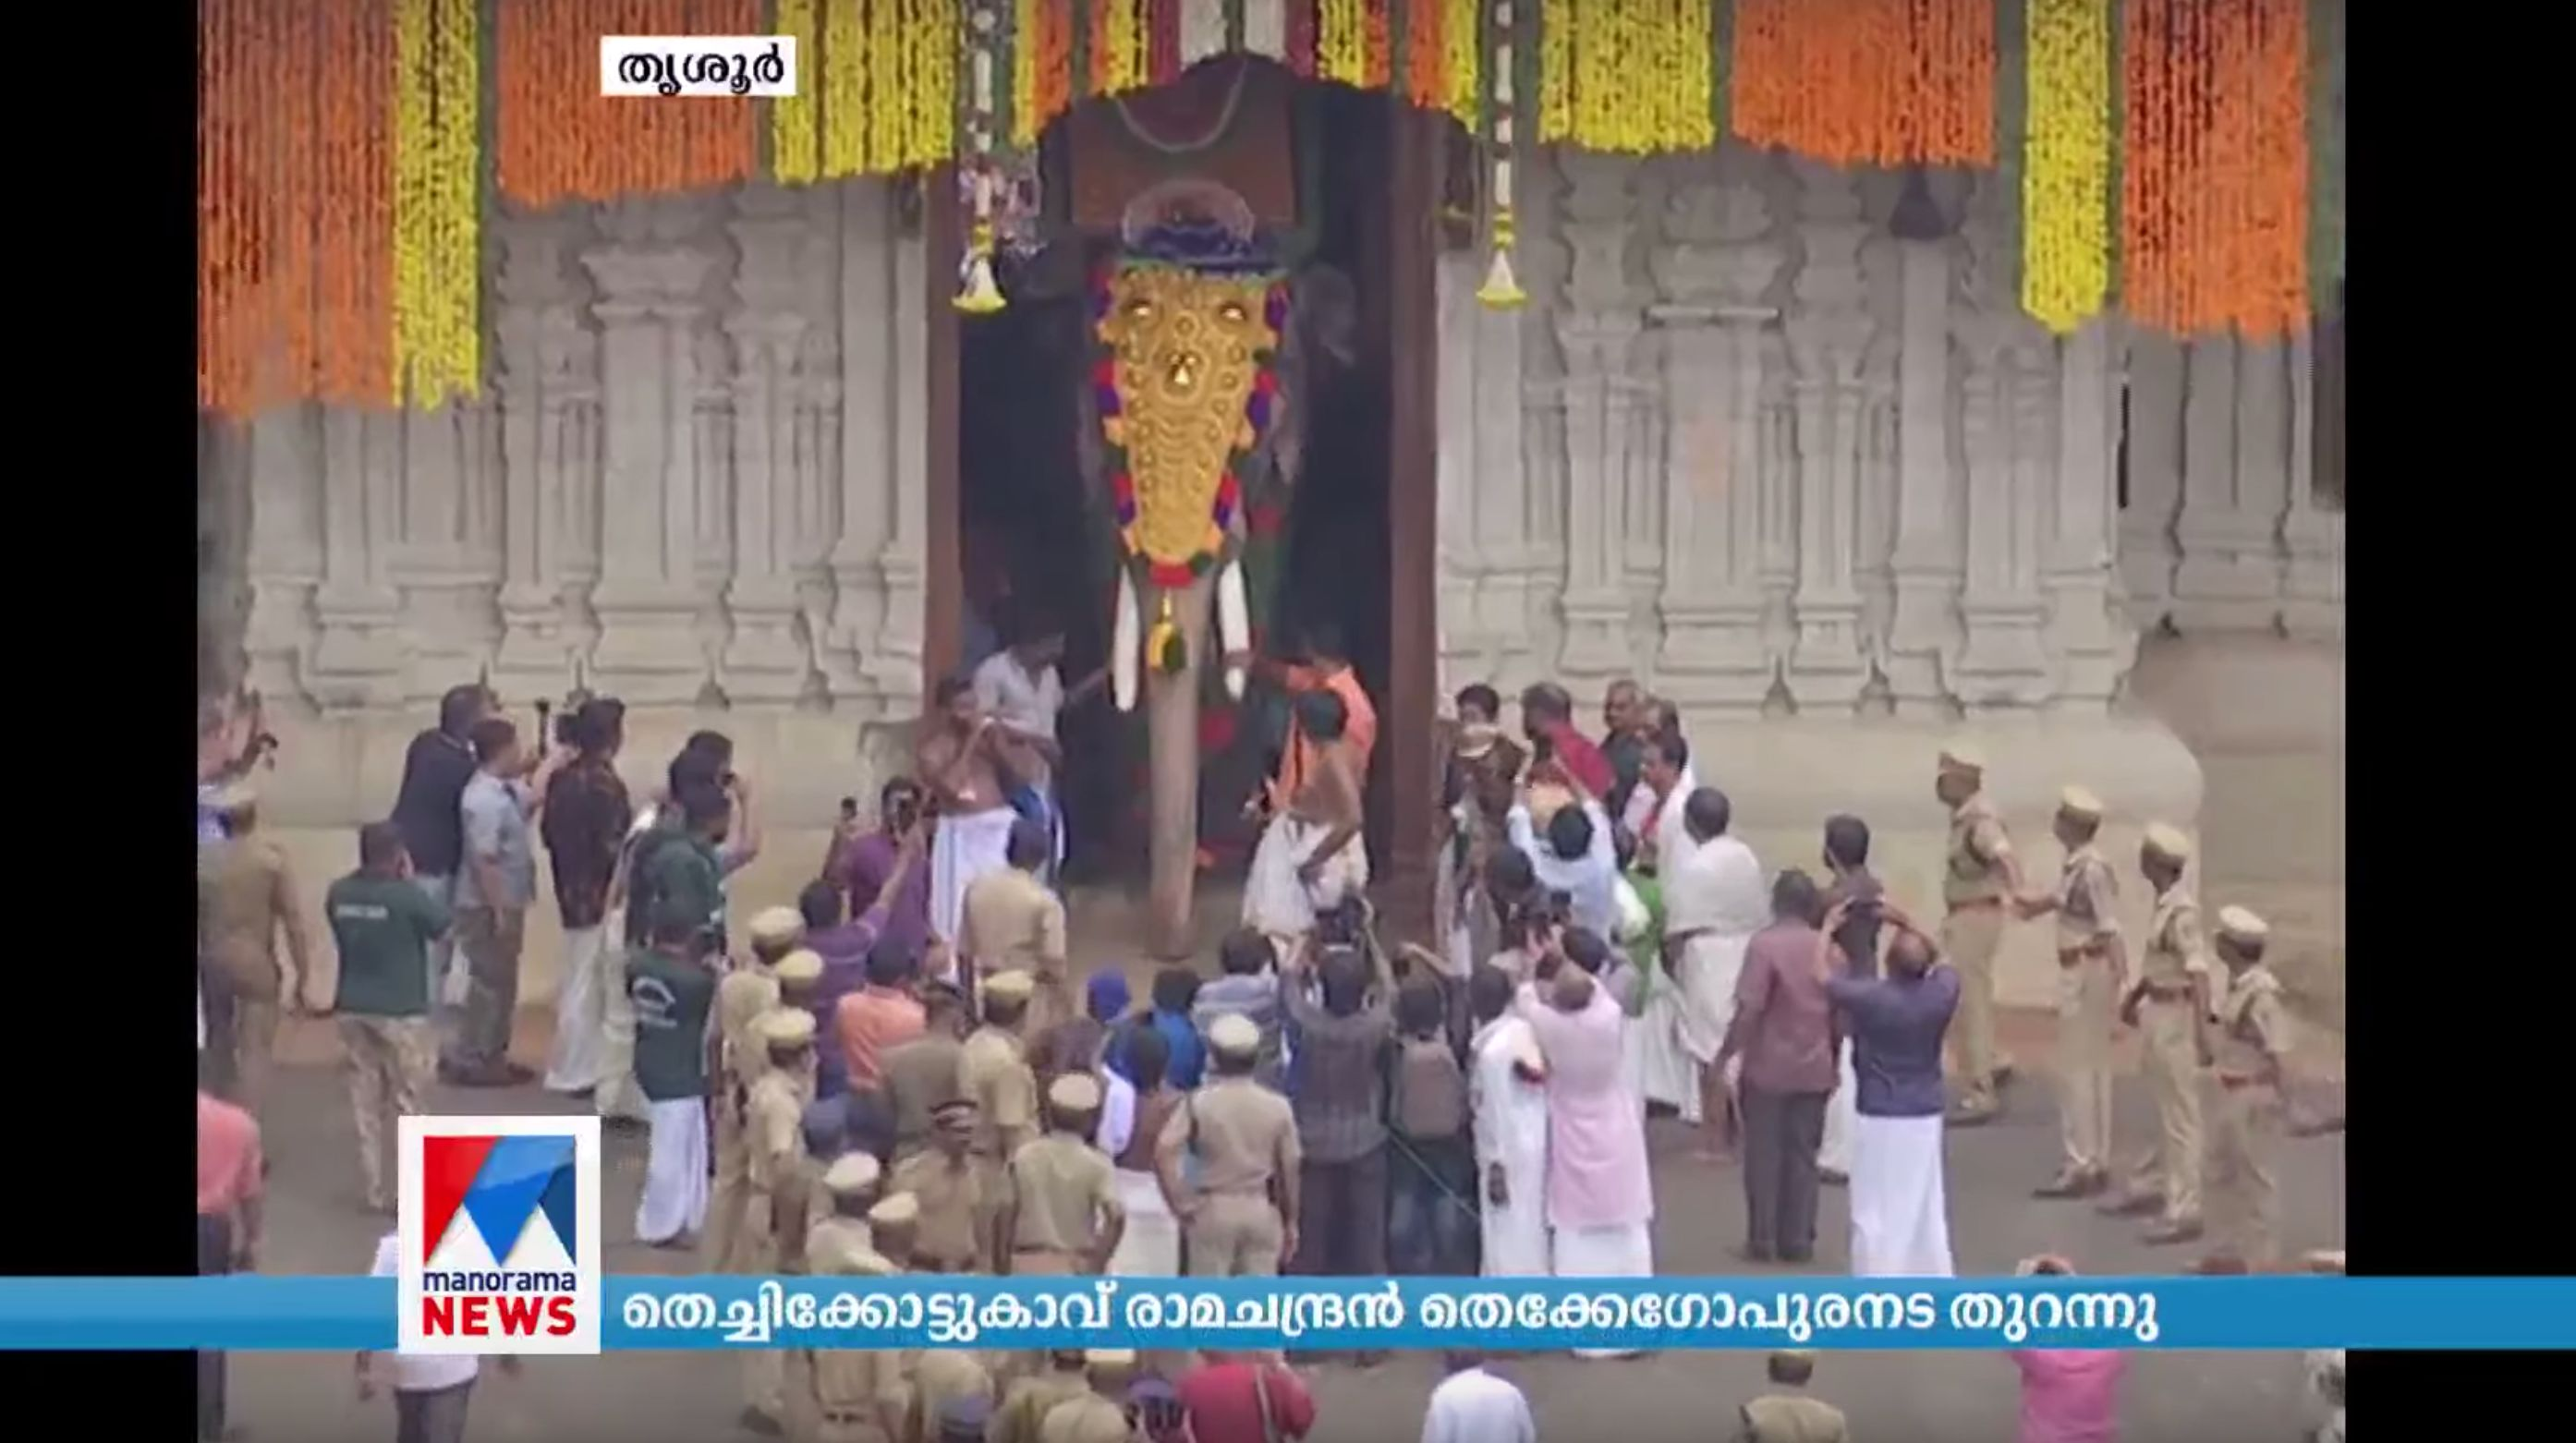 Thrissur Pooram: Kerala's Celebrity Elephant Flags Off Temple Festival After Row Over